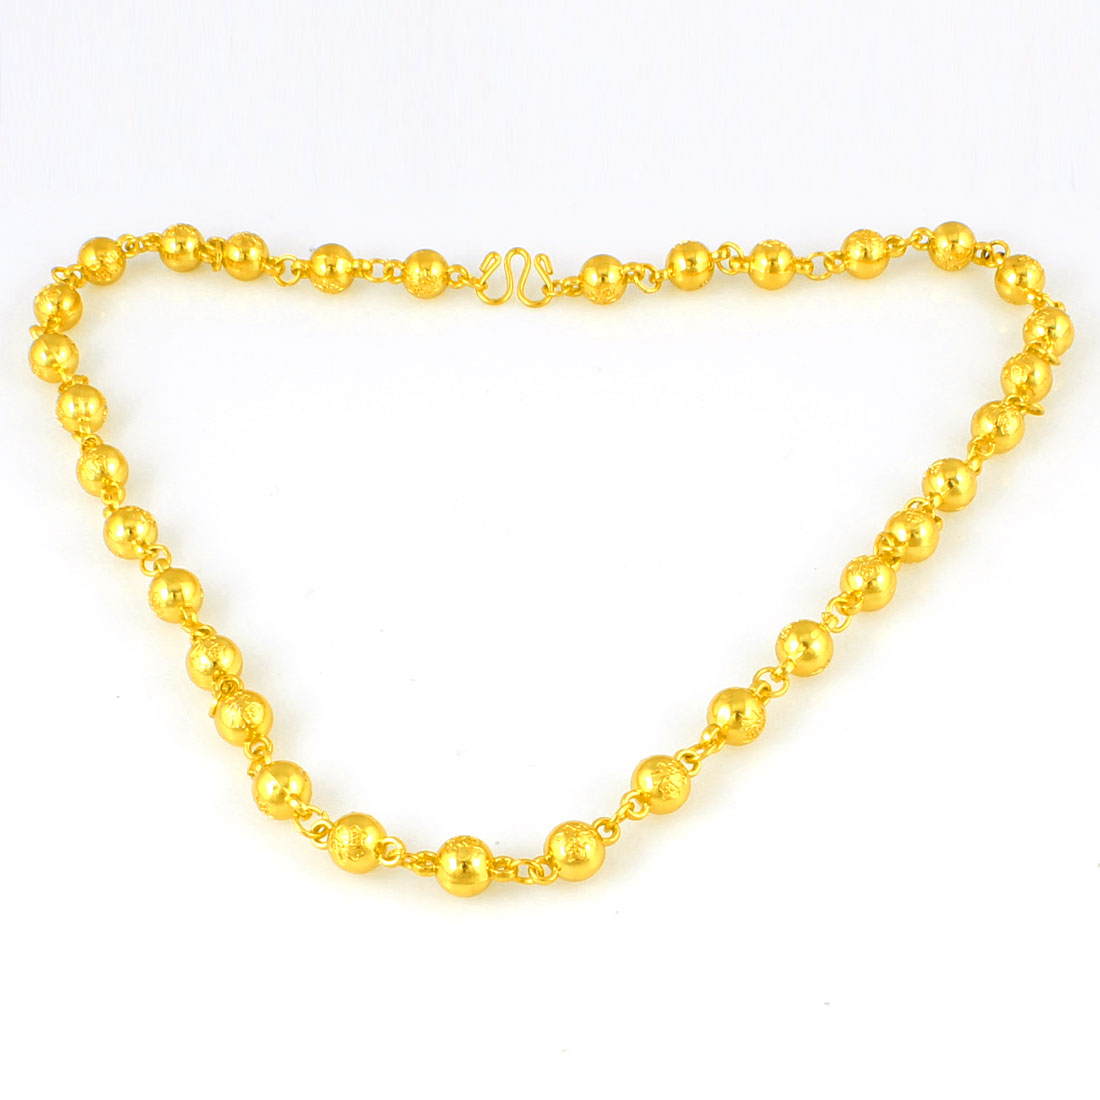 Carved Chinese Words Round Beads Gold Tone Chrome Plated Necklace